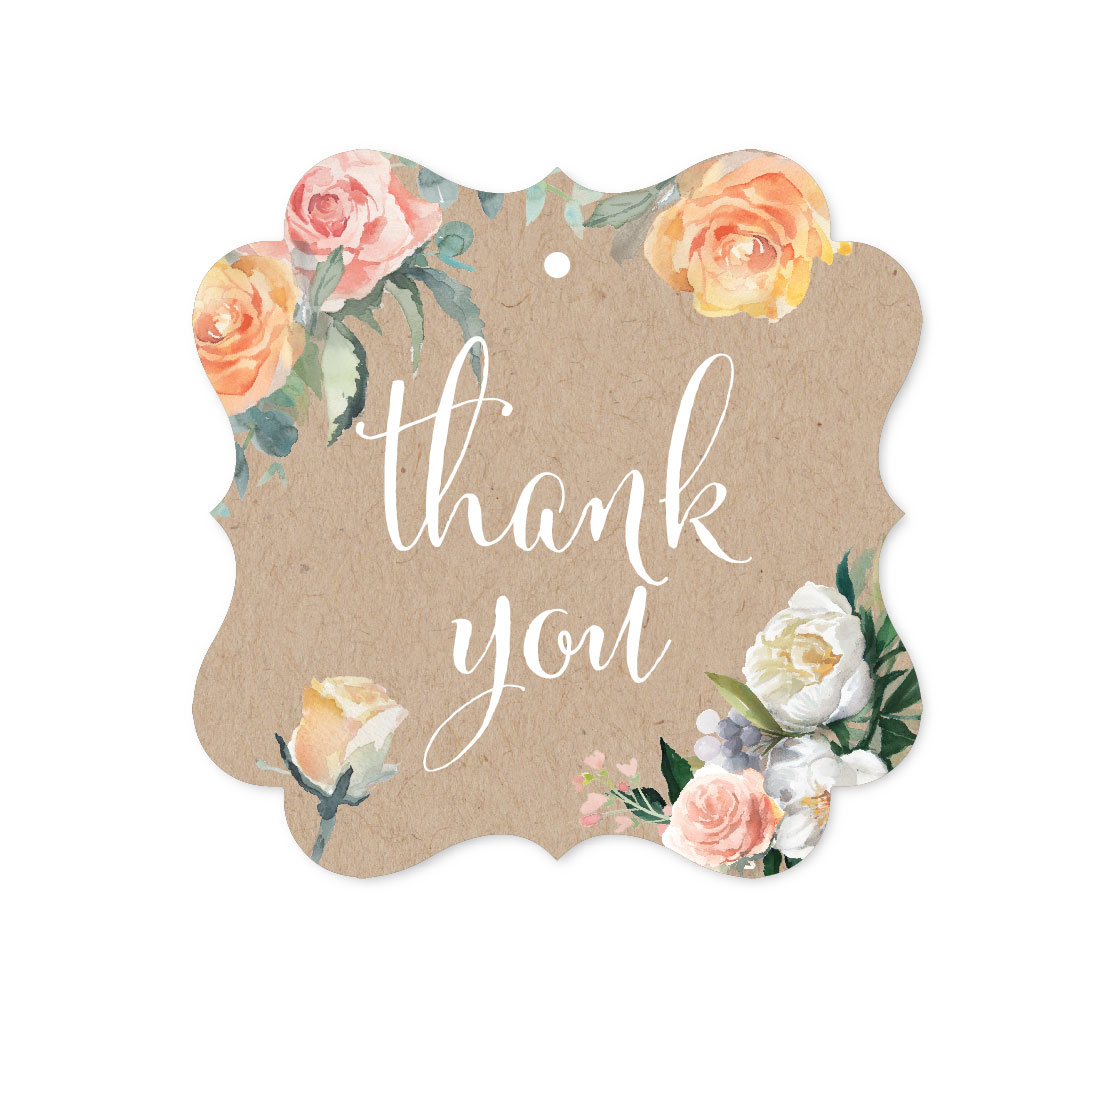 Peach Coral Kraft Brown Rustic Floral Garden Party Wedding, Fancy Frame Gift Tags, Thank You, 24-Pack